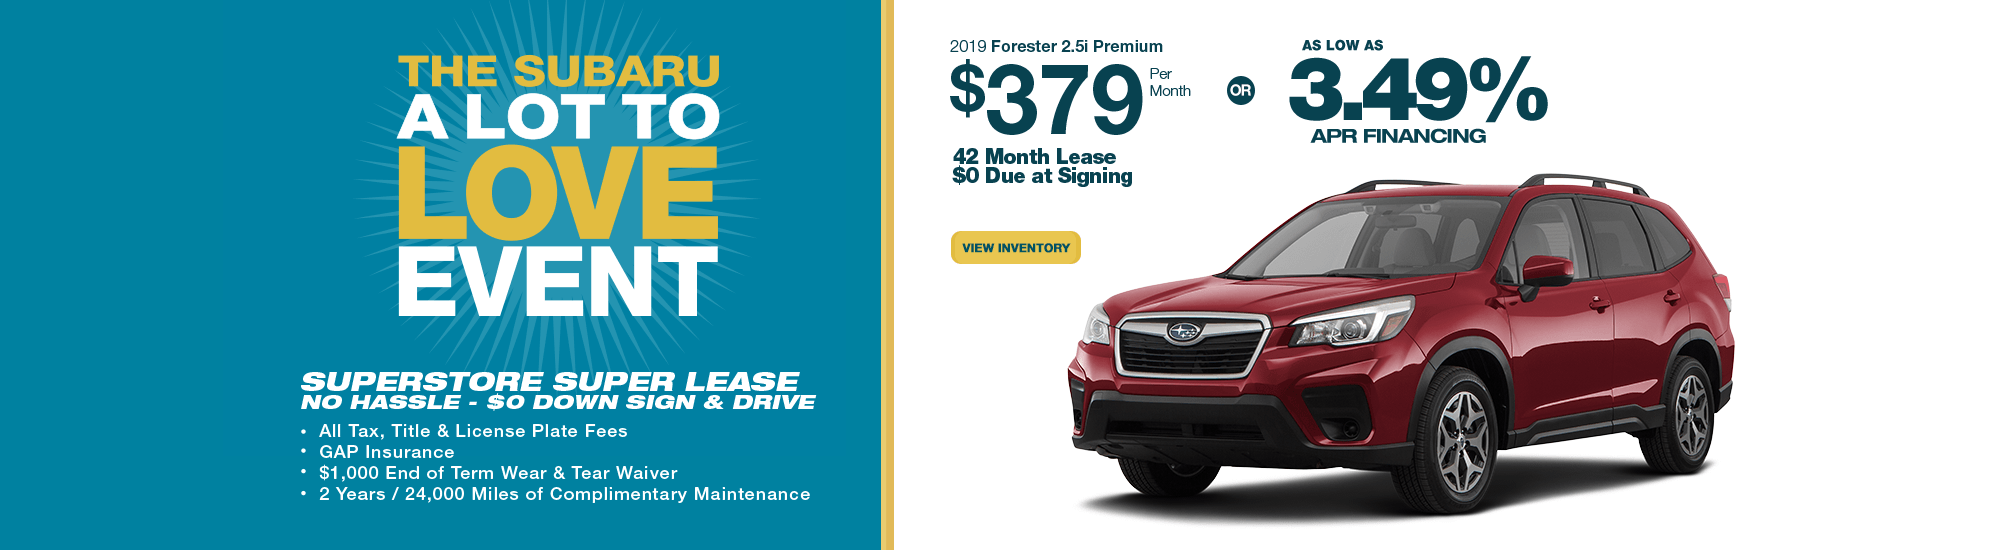 2019 Forester 2.5i Premium lease or low APR finance special at Subaru Superstore of Chandler